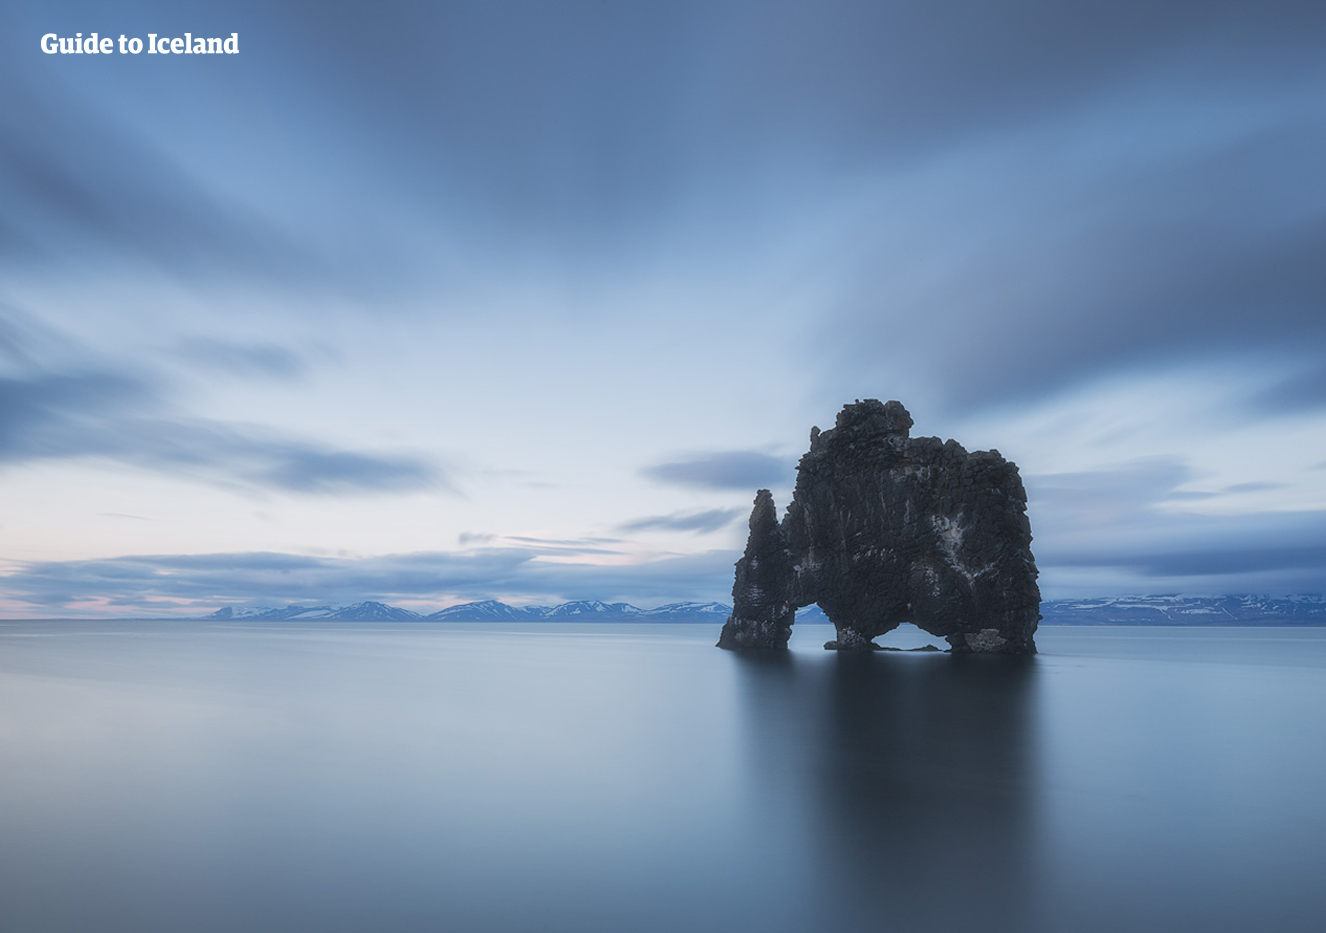 The Hvitserkur Rock Formation off the coast of Iceland.